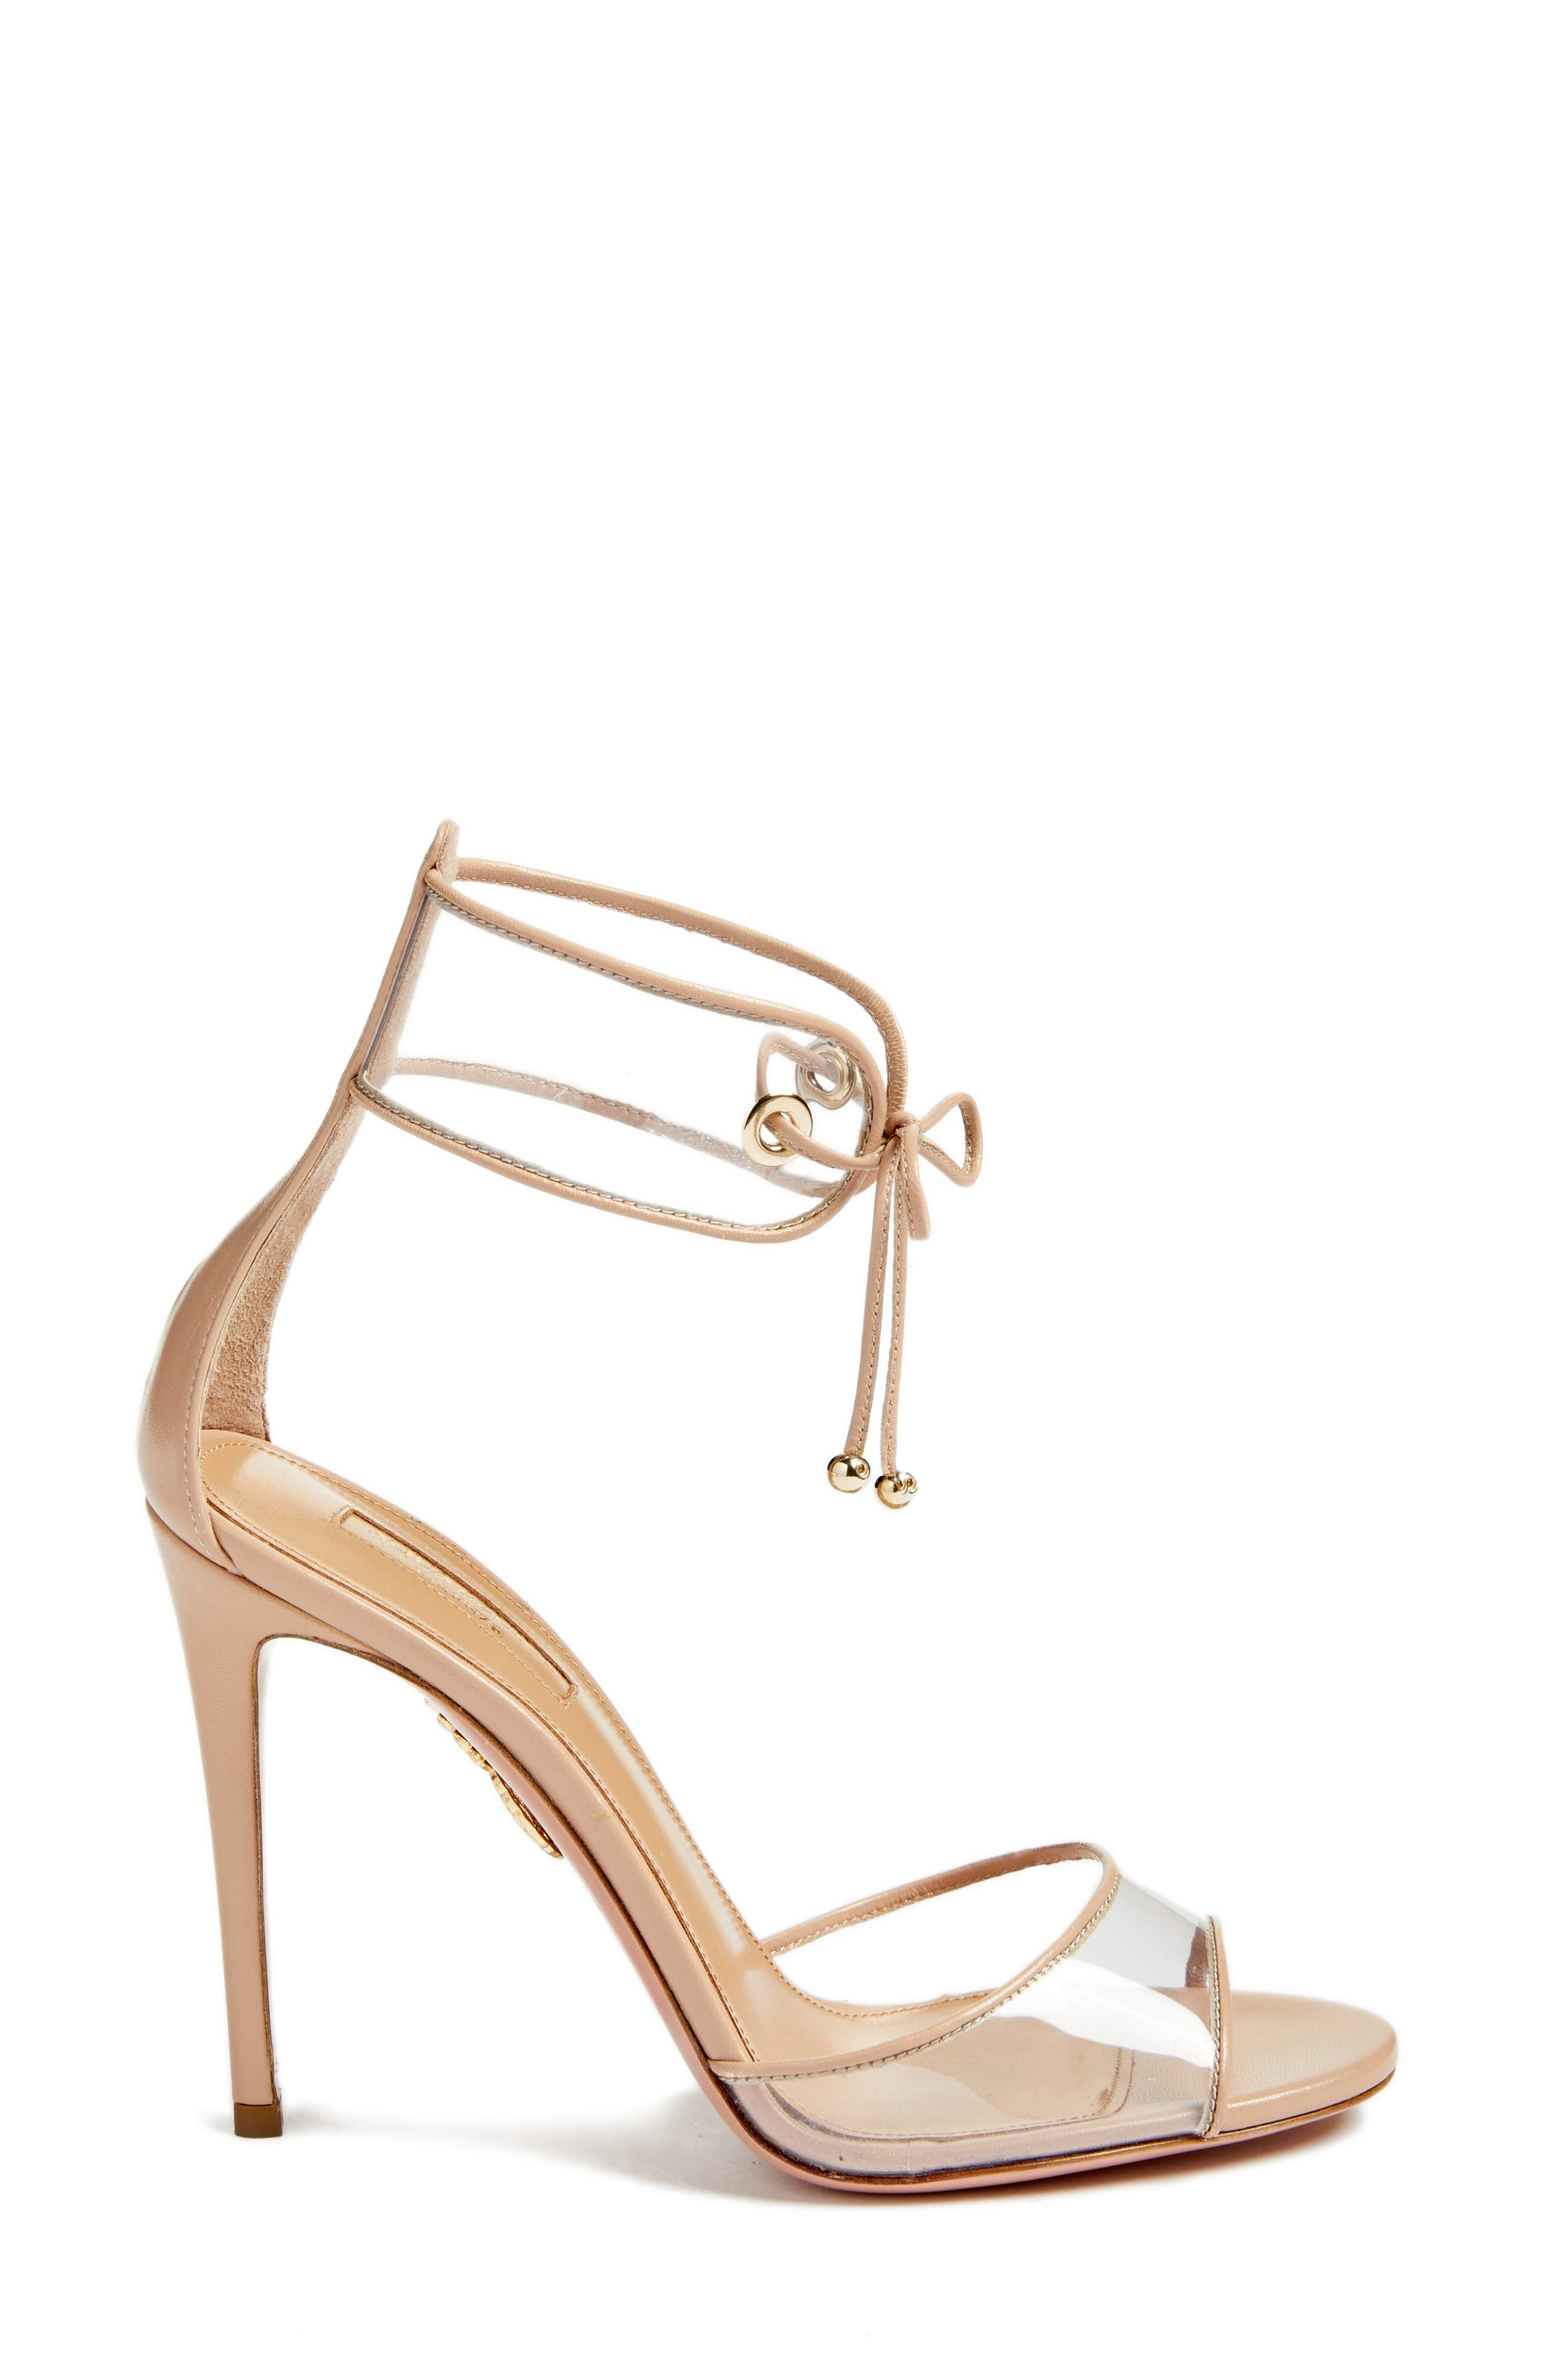 Optic Clear Ankle Tie Sandal,                             Alternate thumbnail 3, color,                             Powder Pink